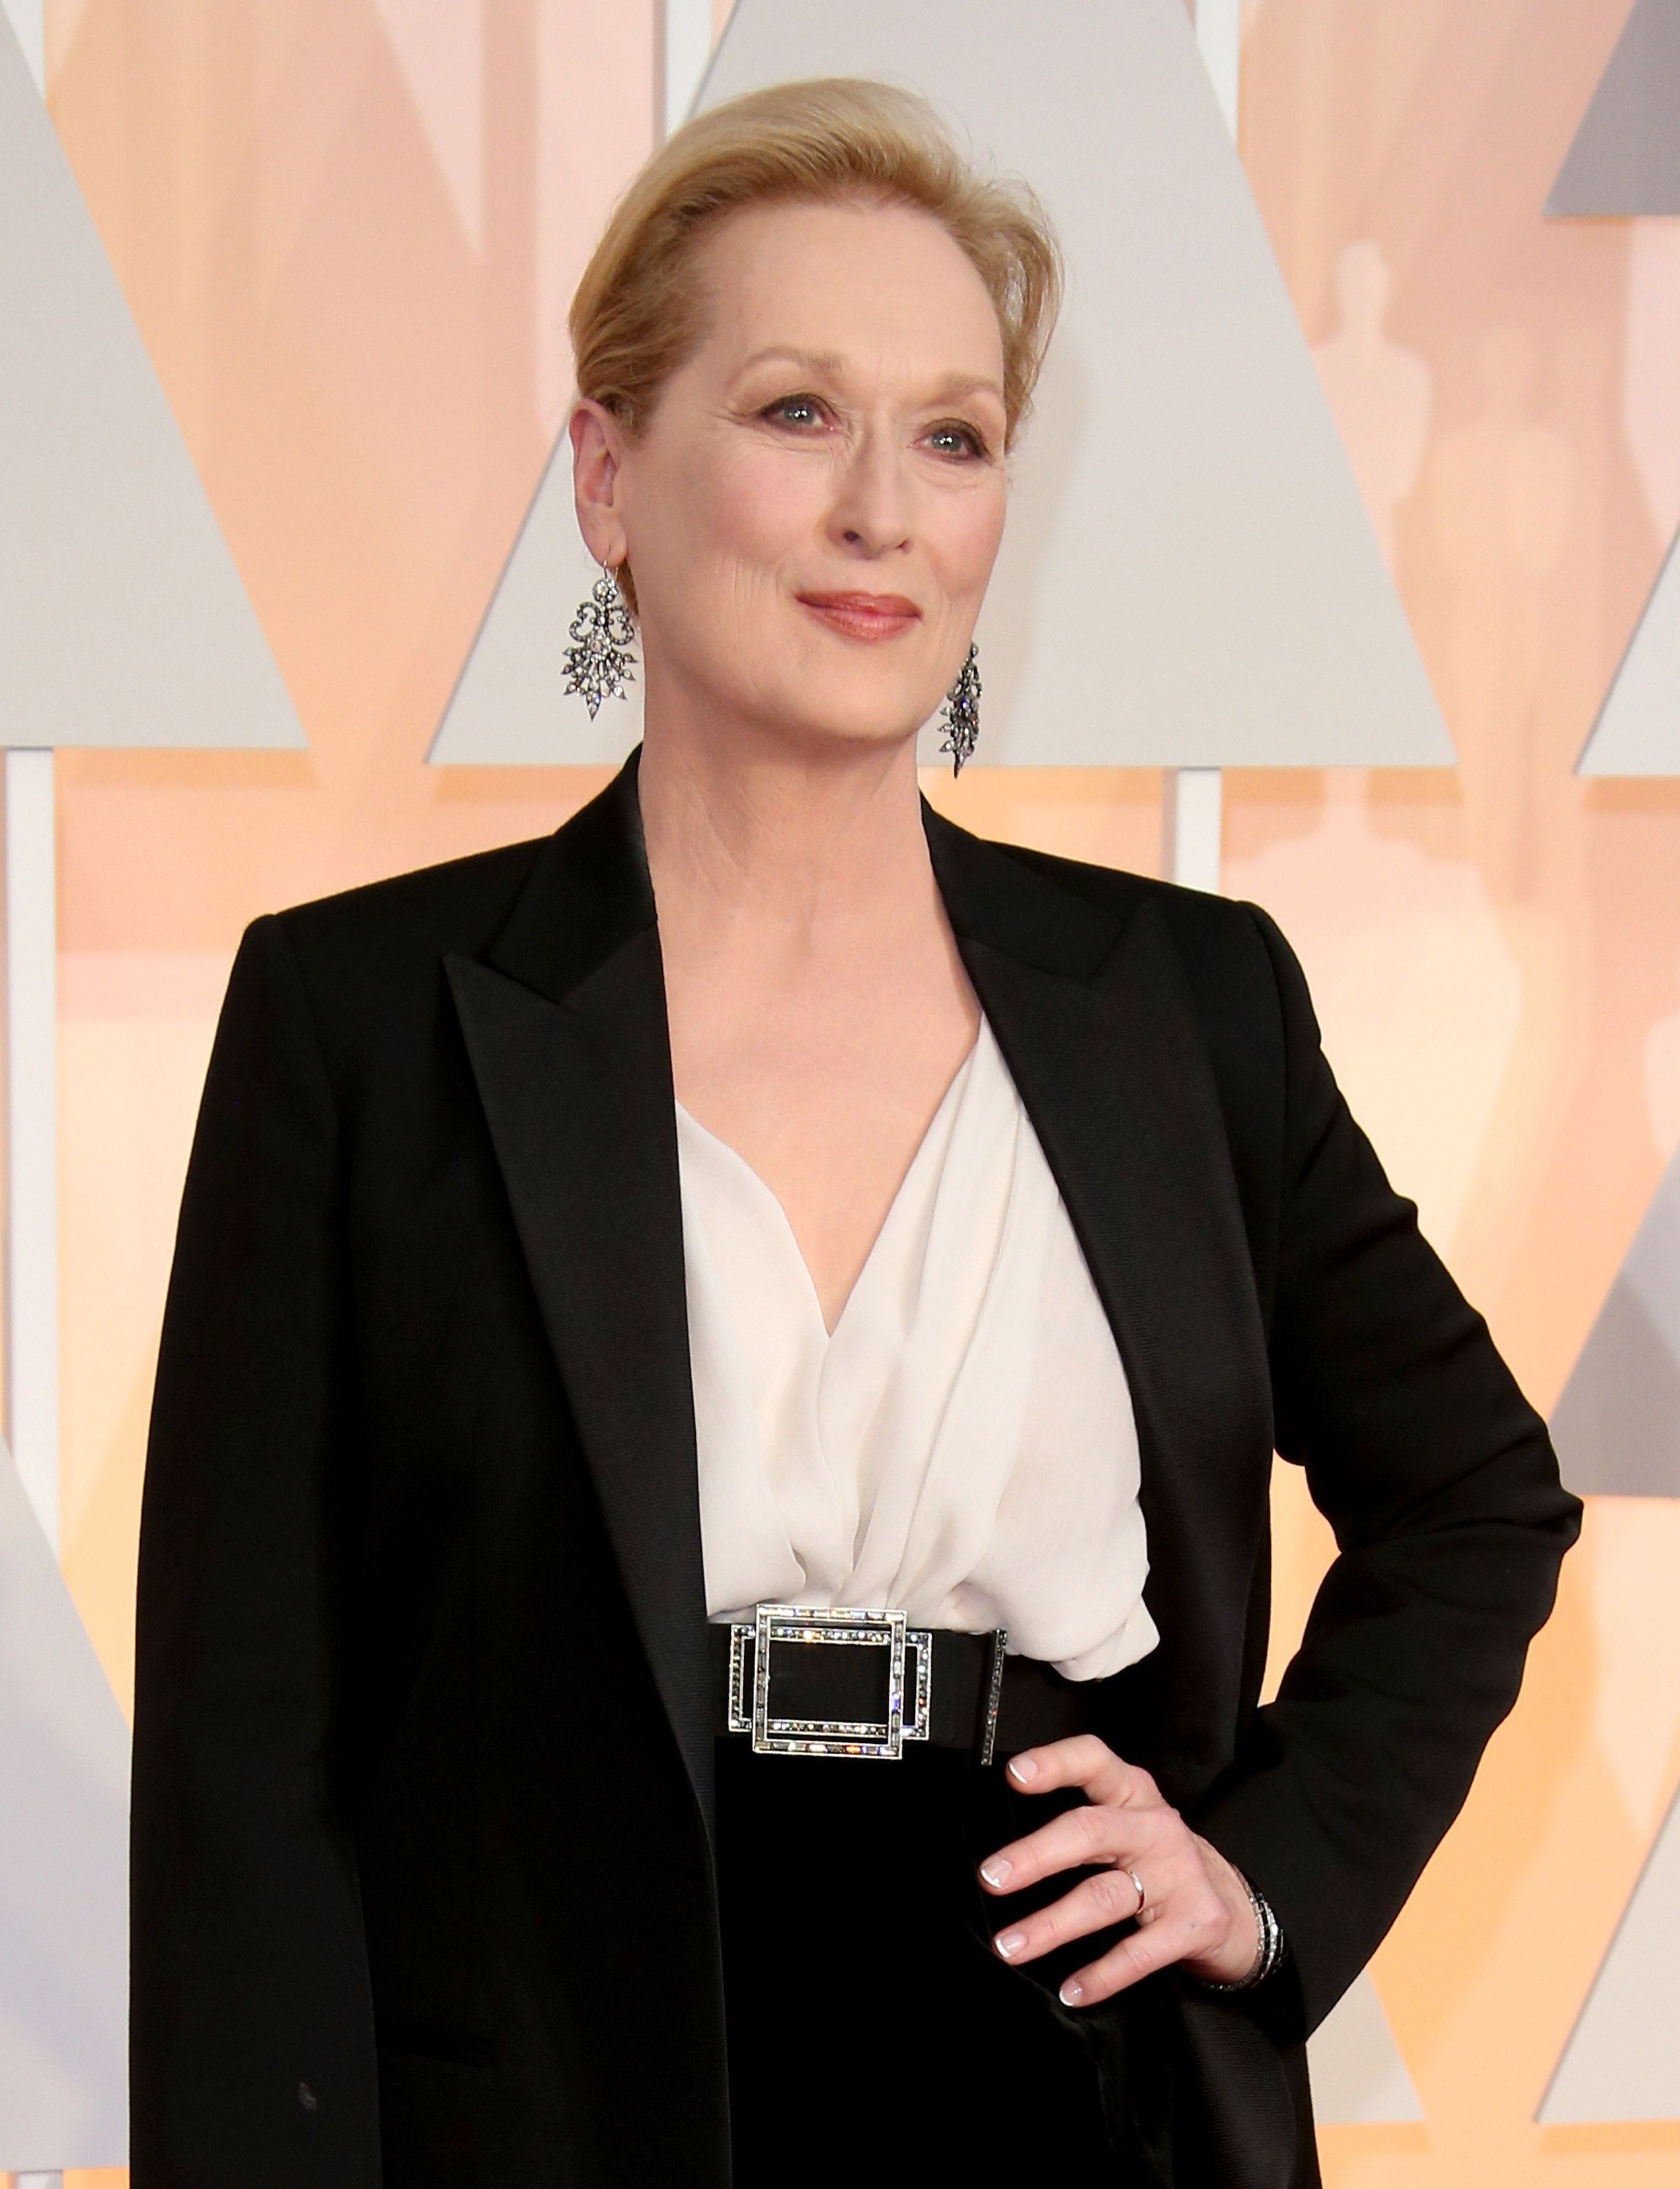 Meryl Streep Speaks Out Against Harvey